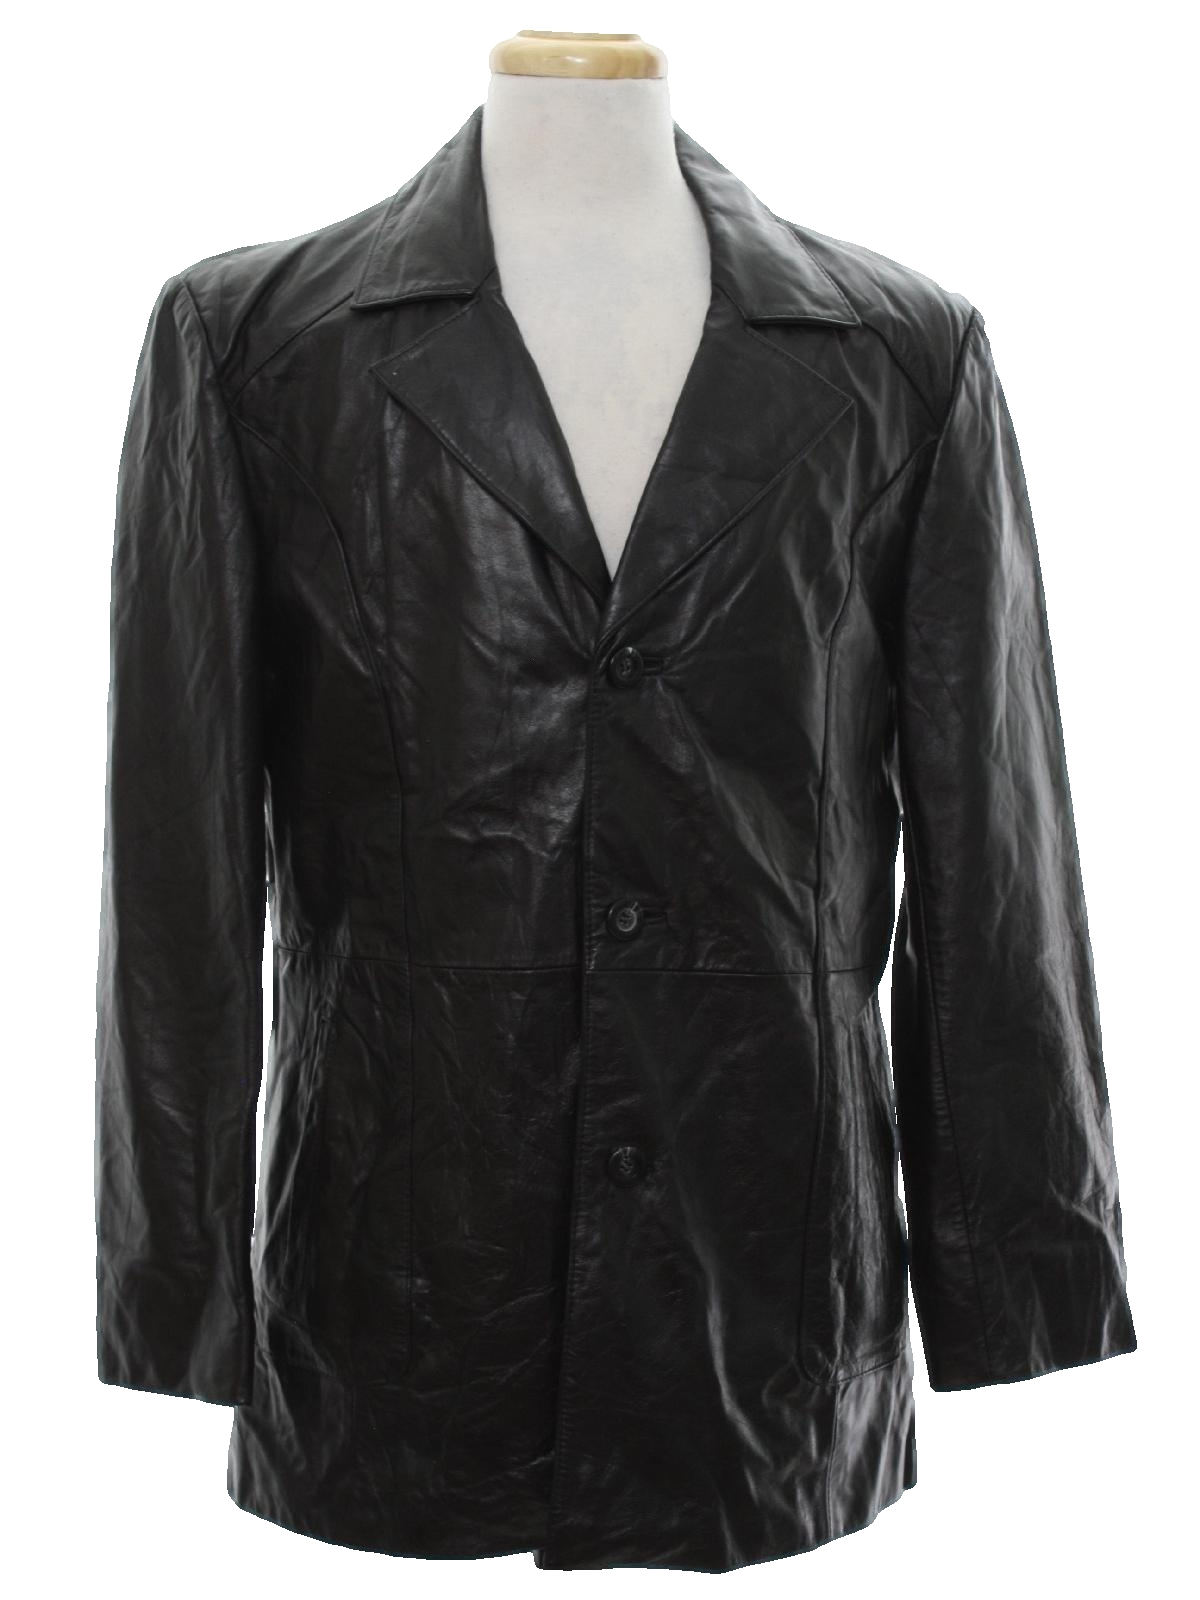 Bolme Seventies Vintage Leather Jacket: 70s -Bolme- Mens